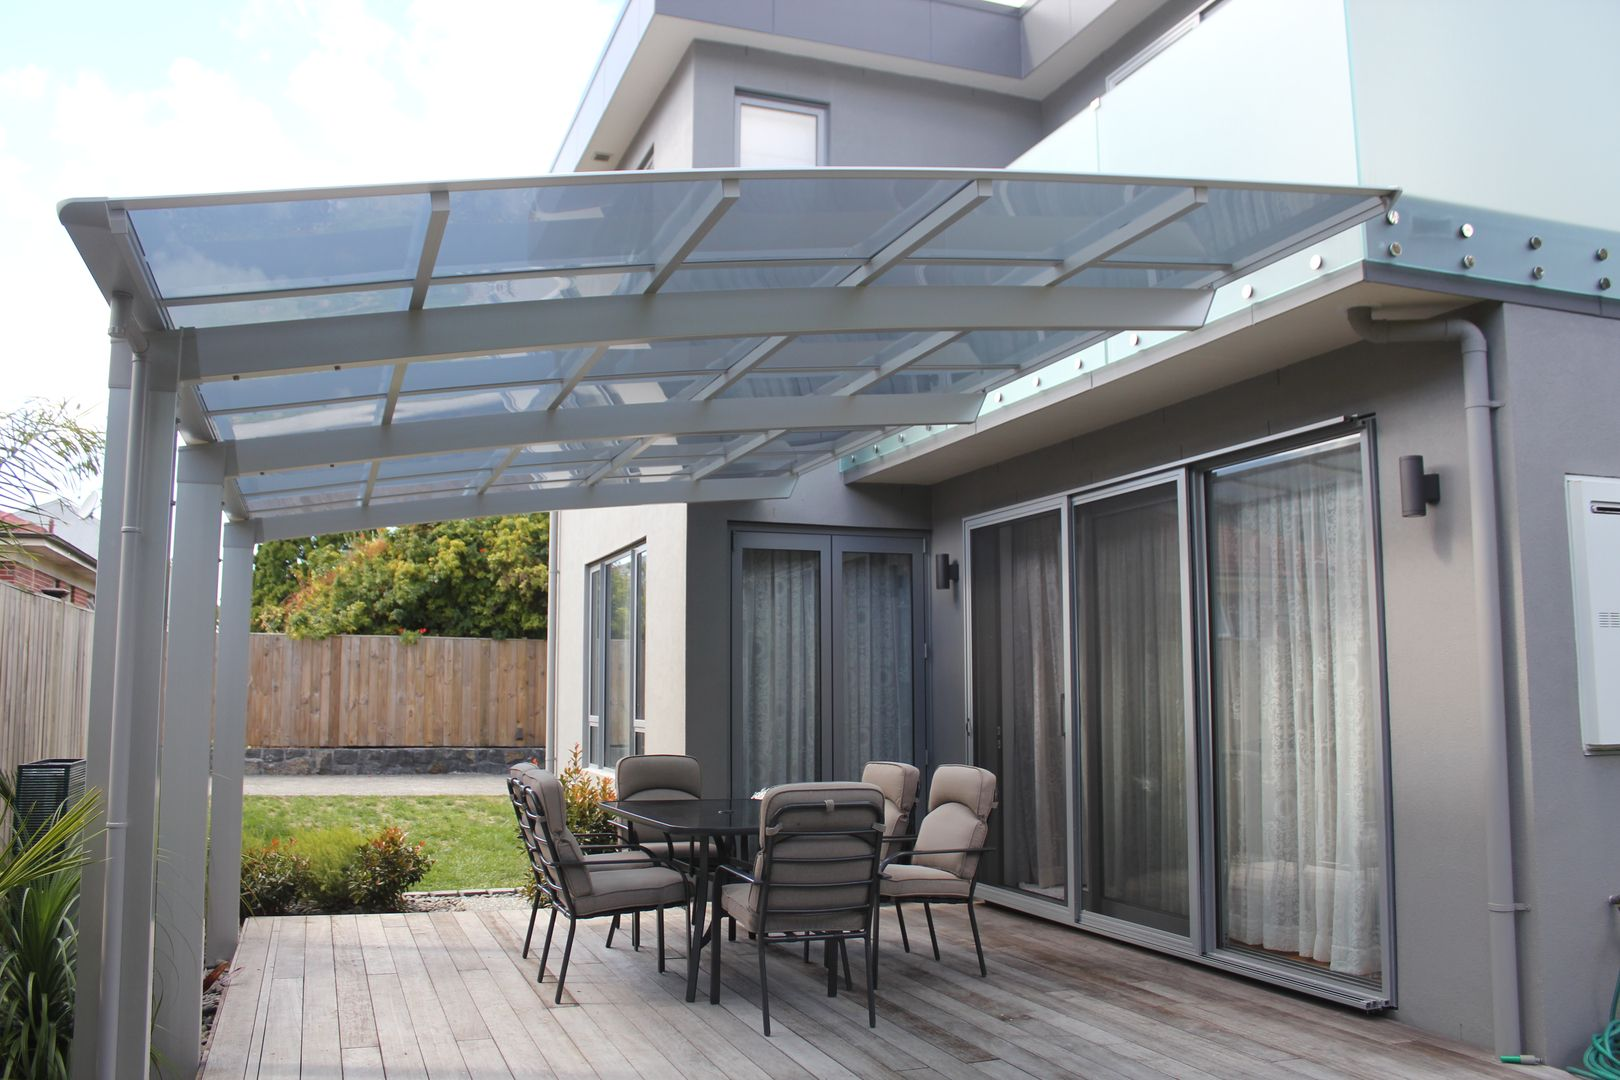 Modern Carport, Awning, & Fence Carports, Awning, Metal